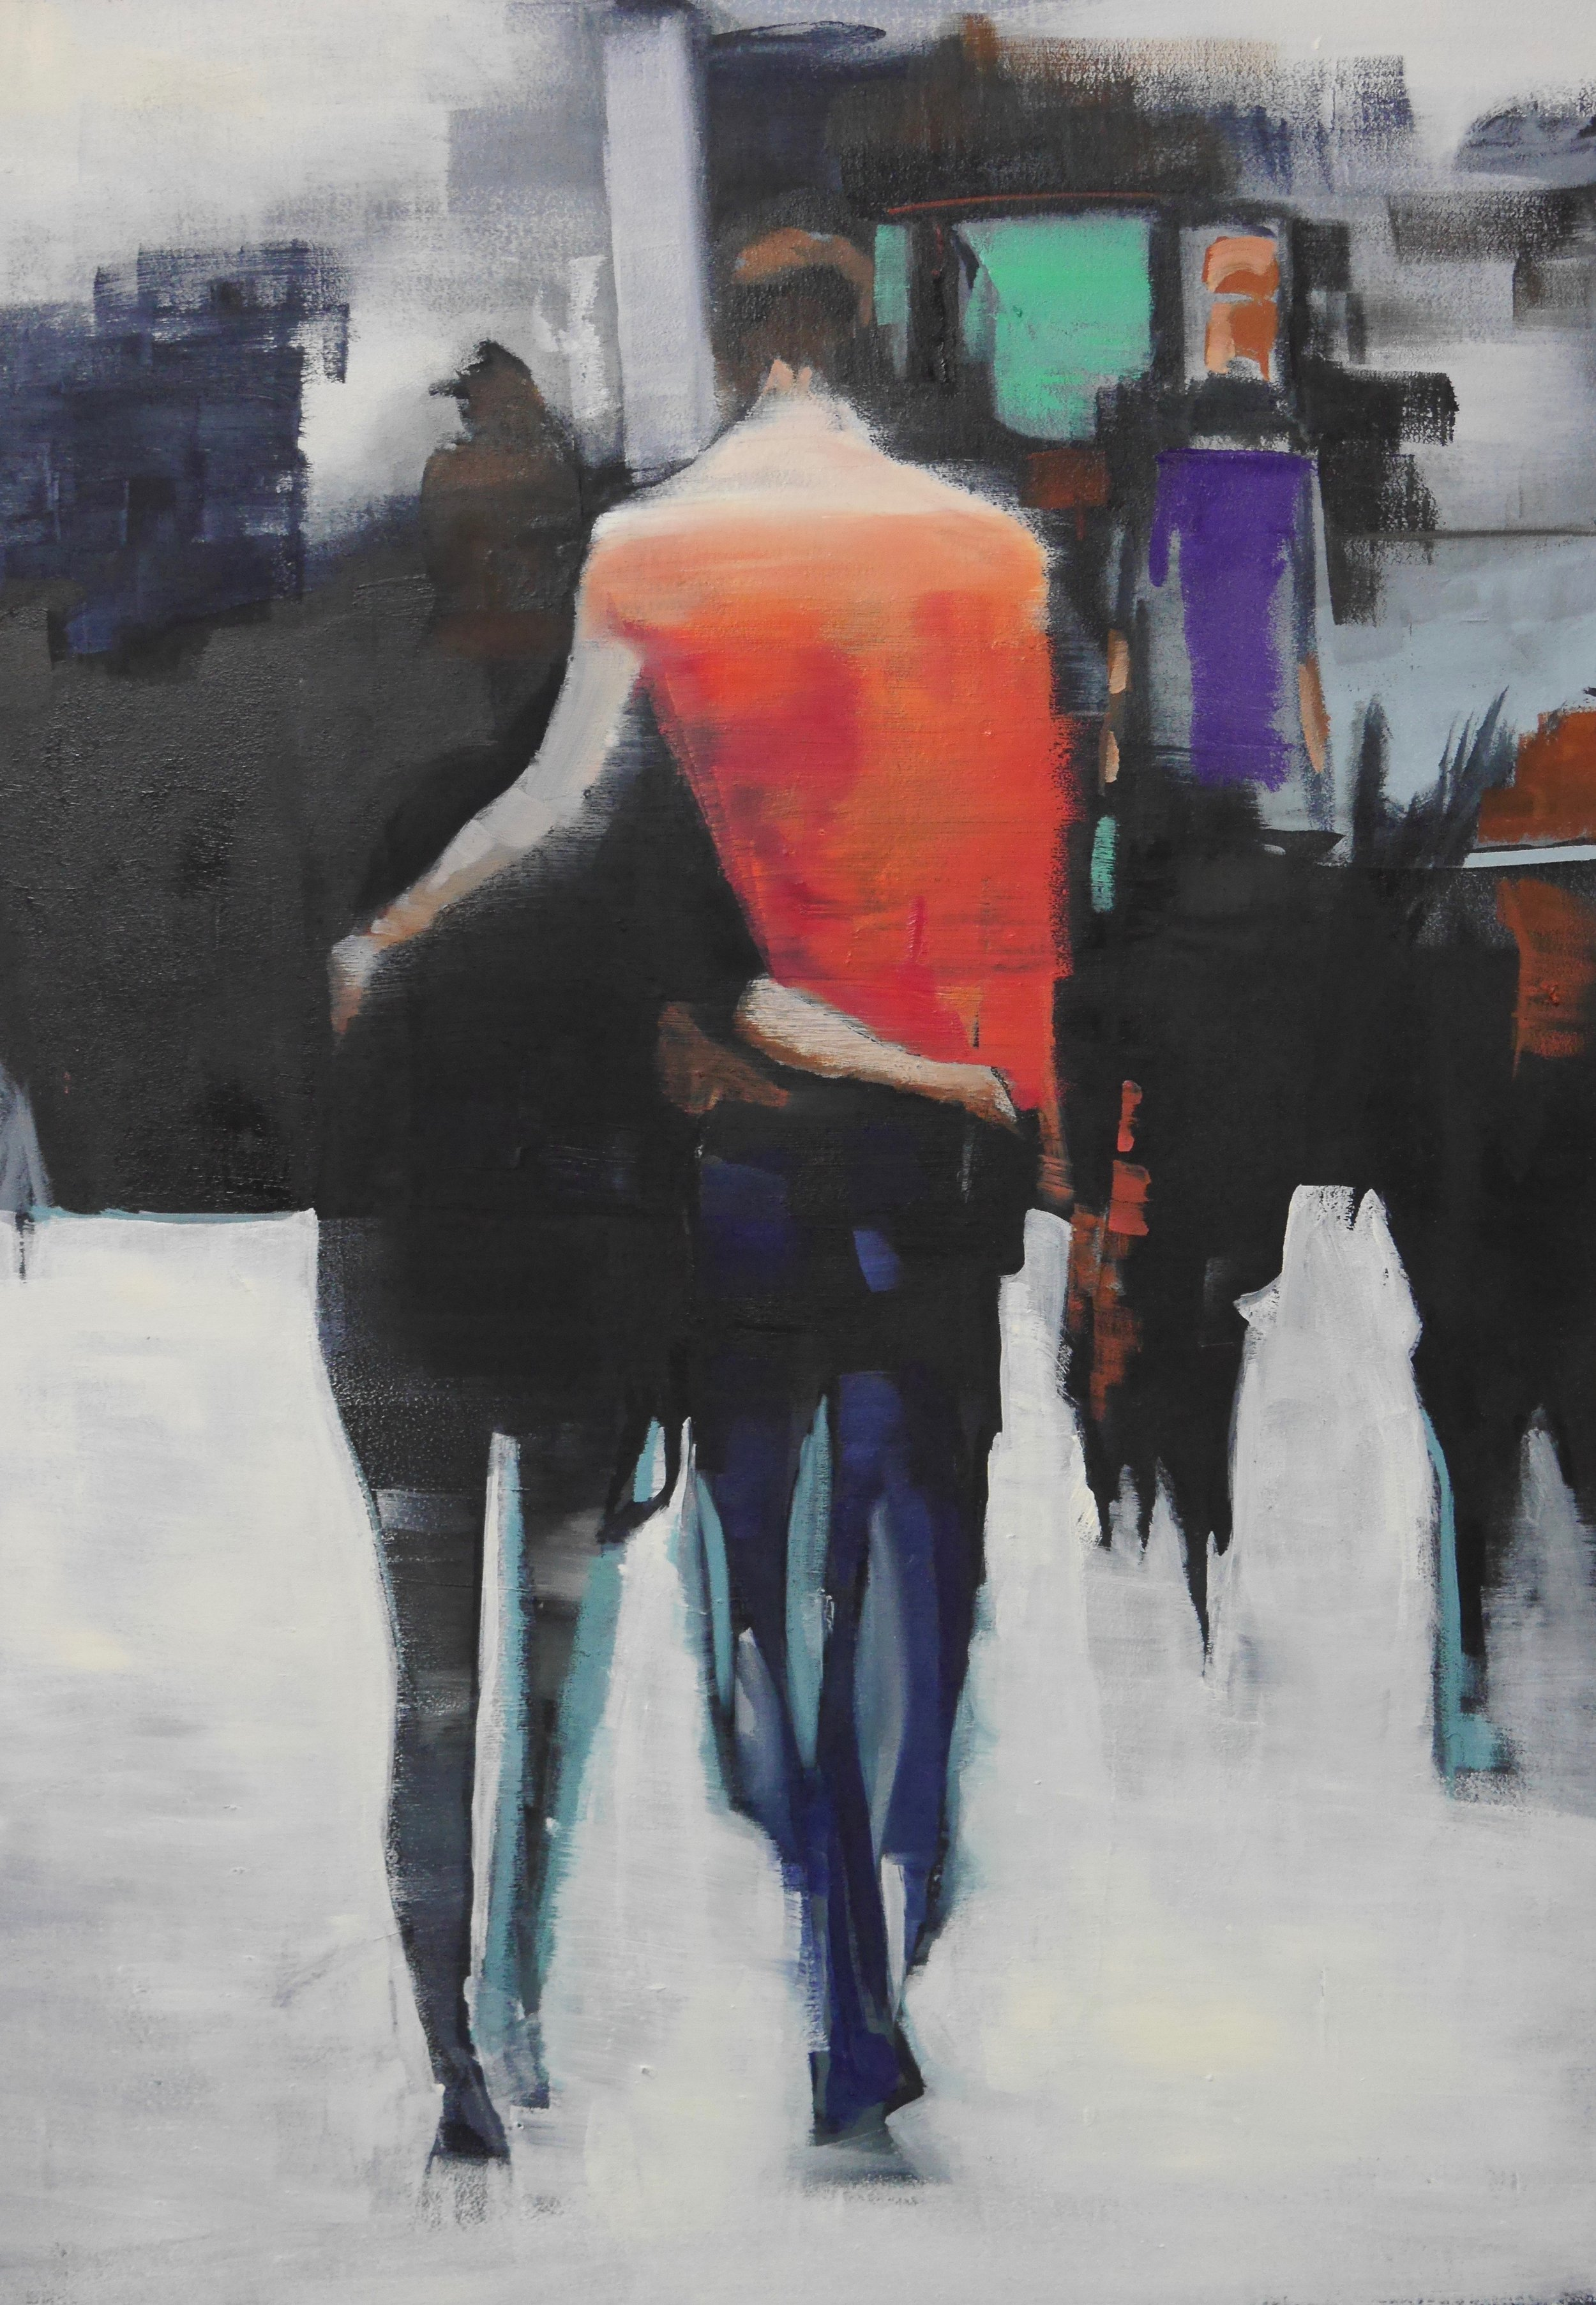 CLOSER NOW OIL ON WOODEN PANEL. 67 X 49